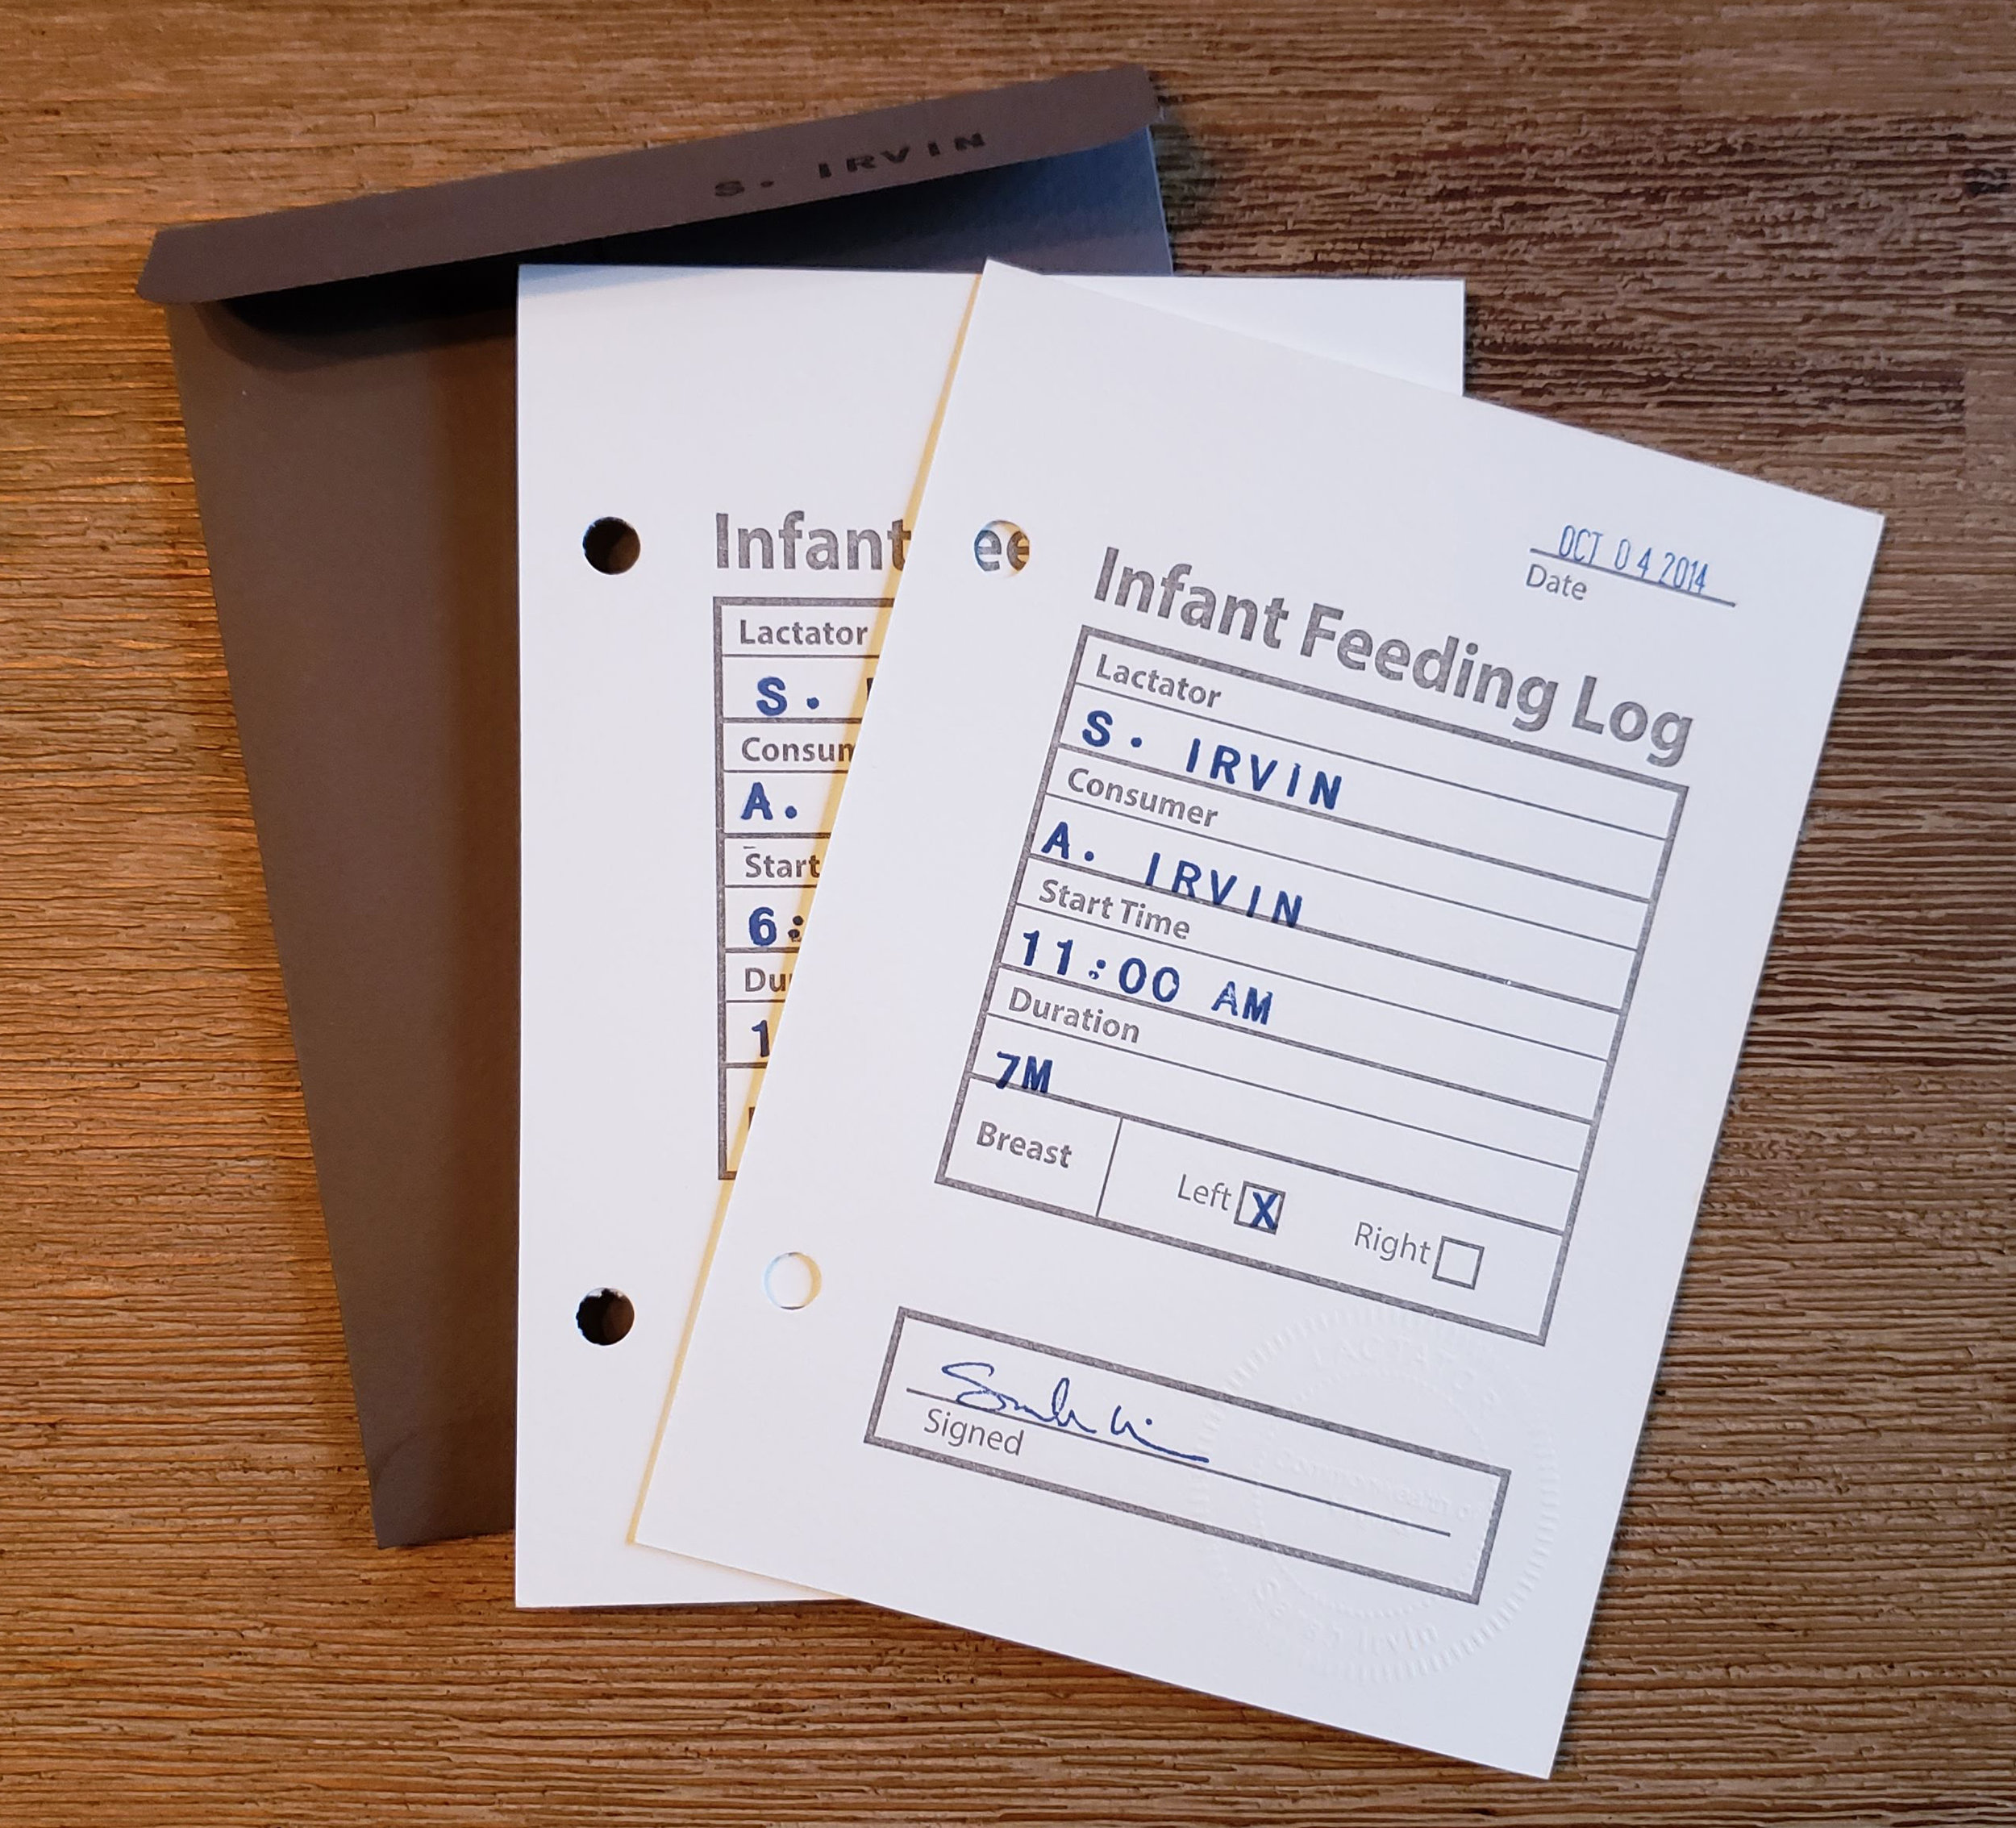 Sarah Irvin, Infant Feeding Log (10/4/2014 & 6/7/2015 sessions), 2018; Edition size: 23, Platen-pressed cards, hand-stamped archival ink, with artist envelope, 6.25 x 4.5 inches each